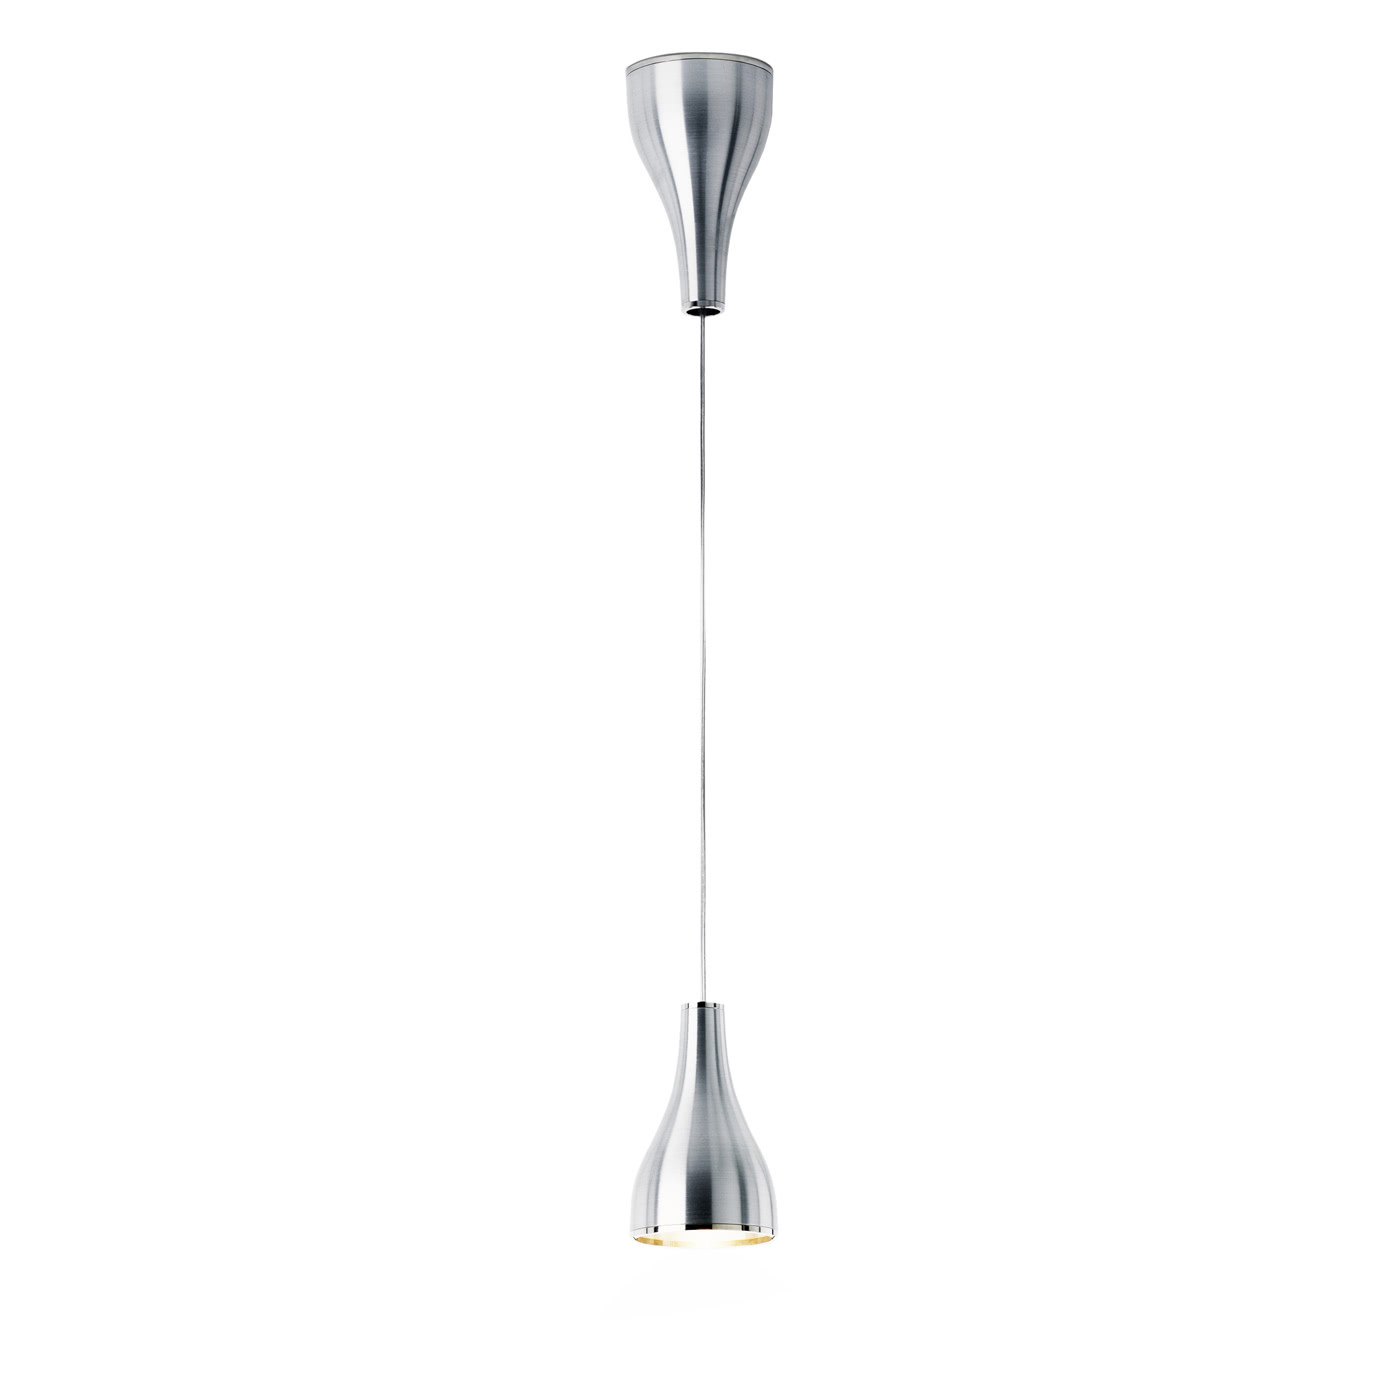 Serien Lighting One Eighty Suspension Adjustable S